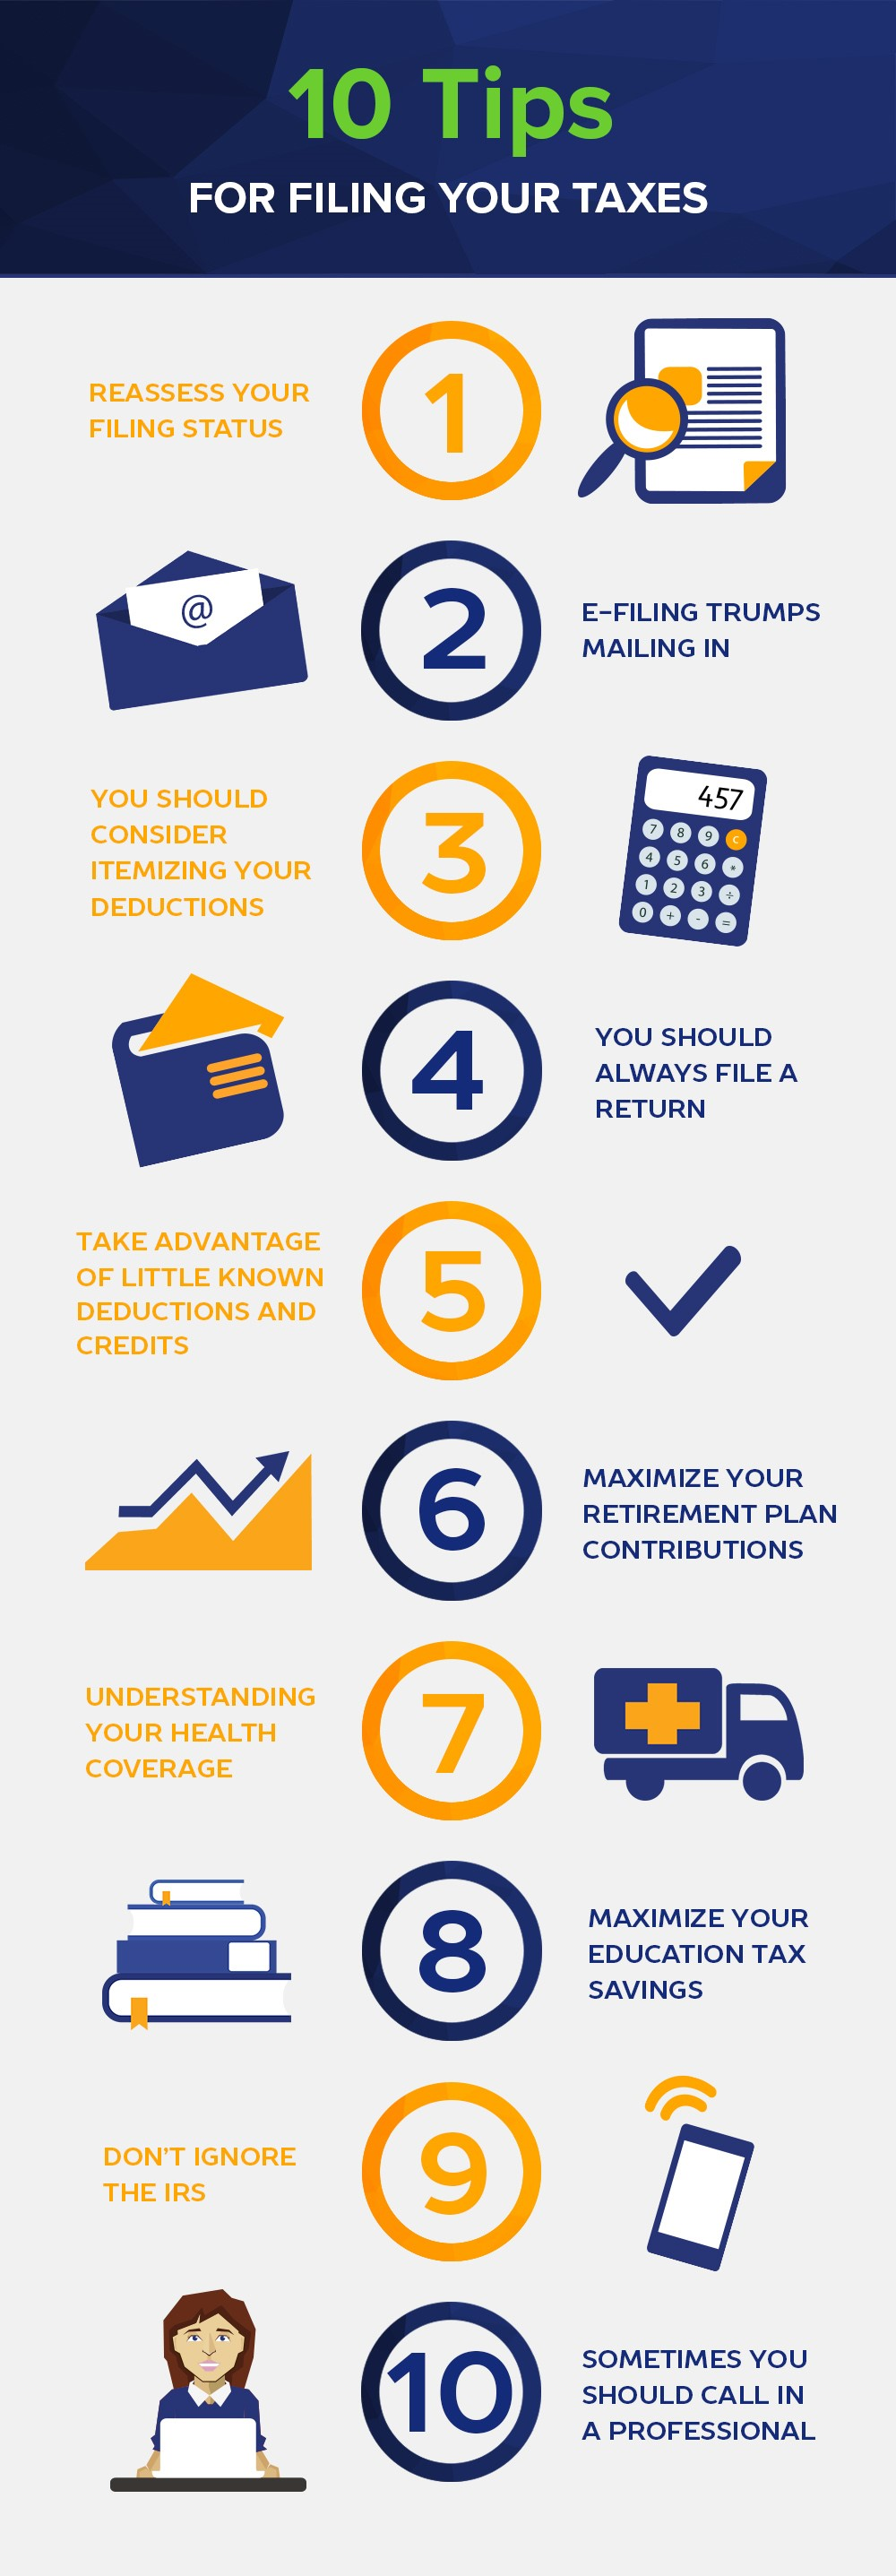 How to Determine Your Tax Filing Status